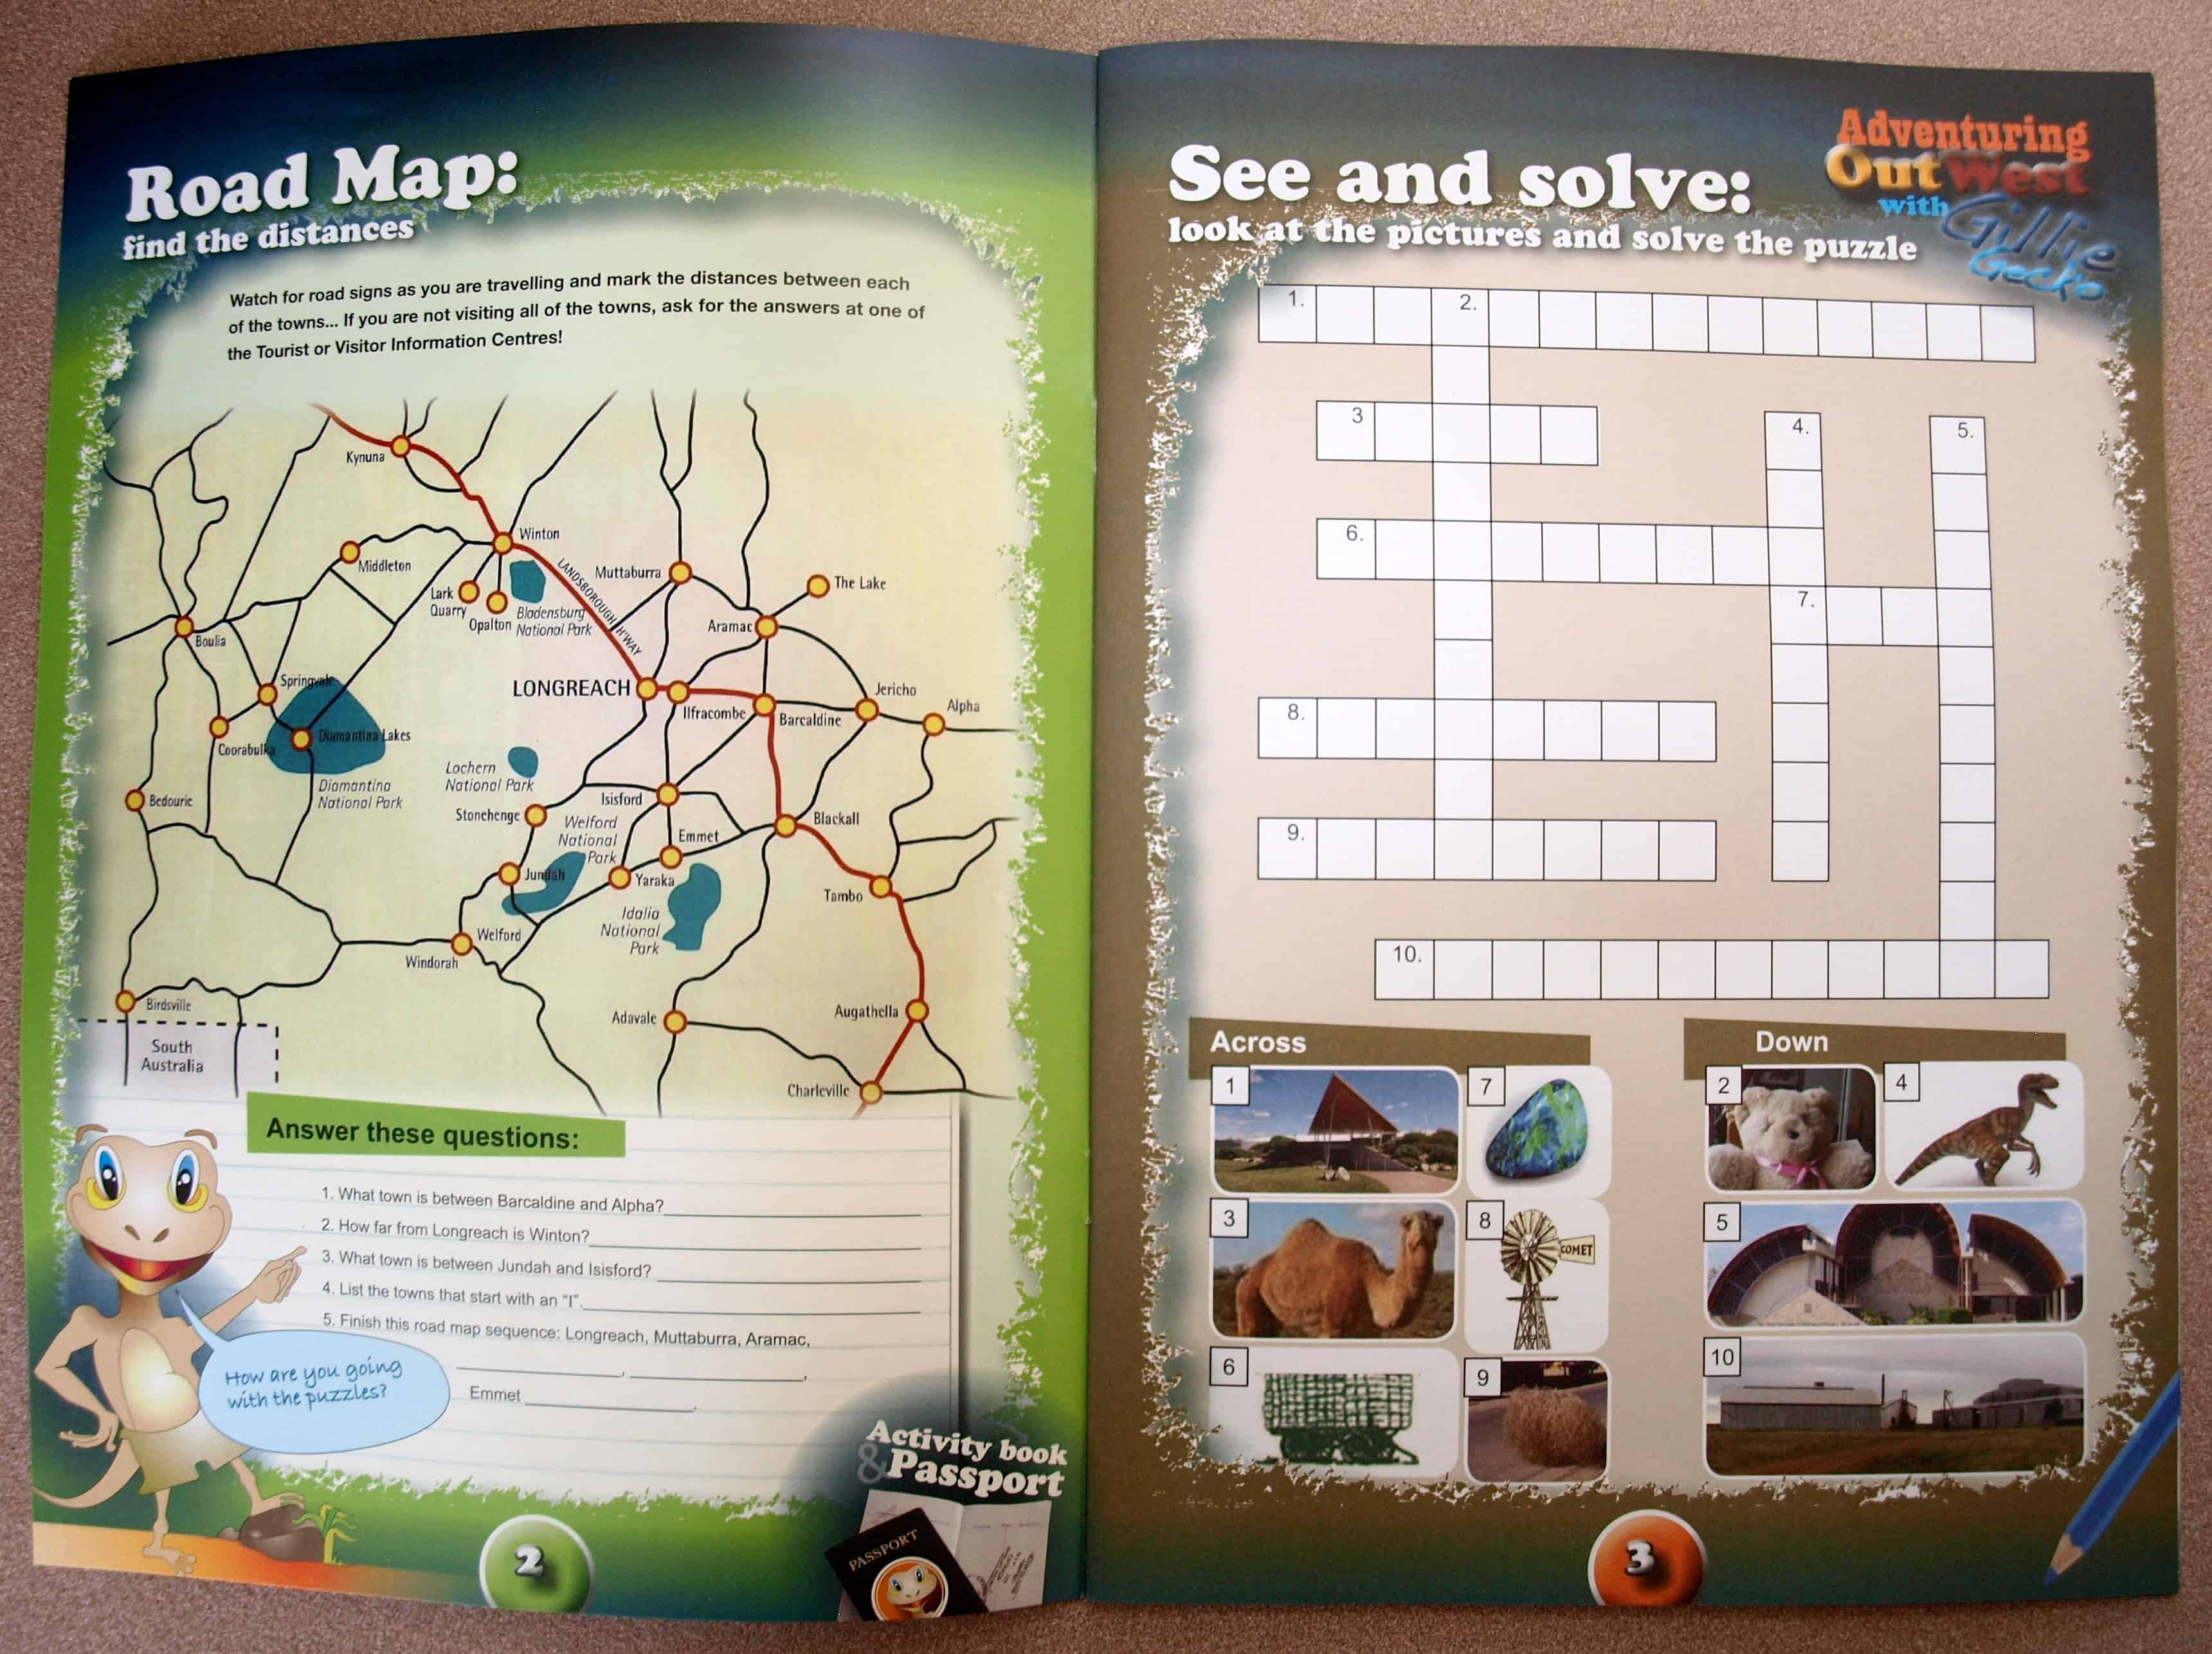 A free activity book about Western Queensland that we picked up in Barcaldine